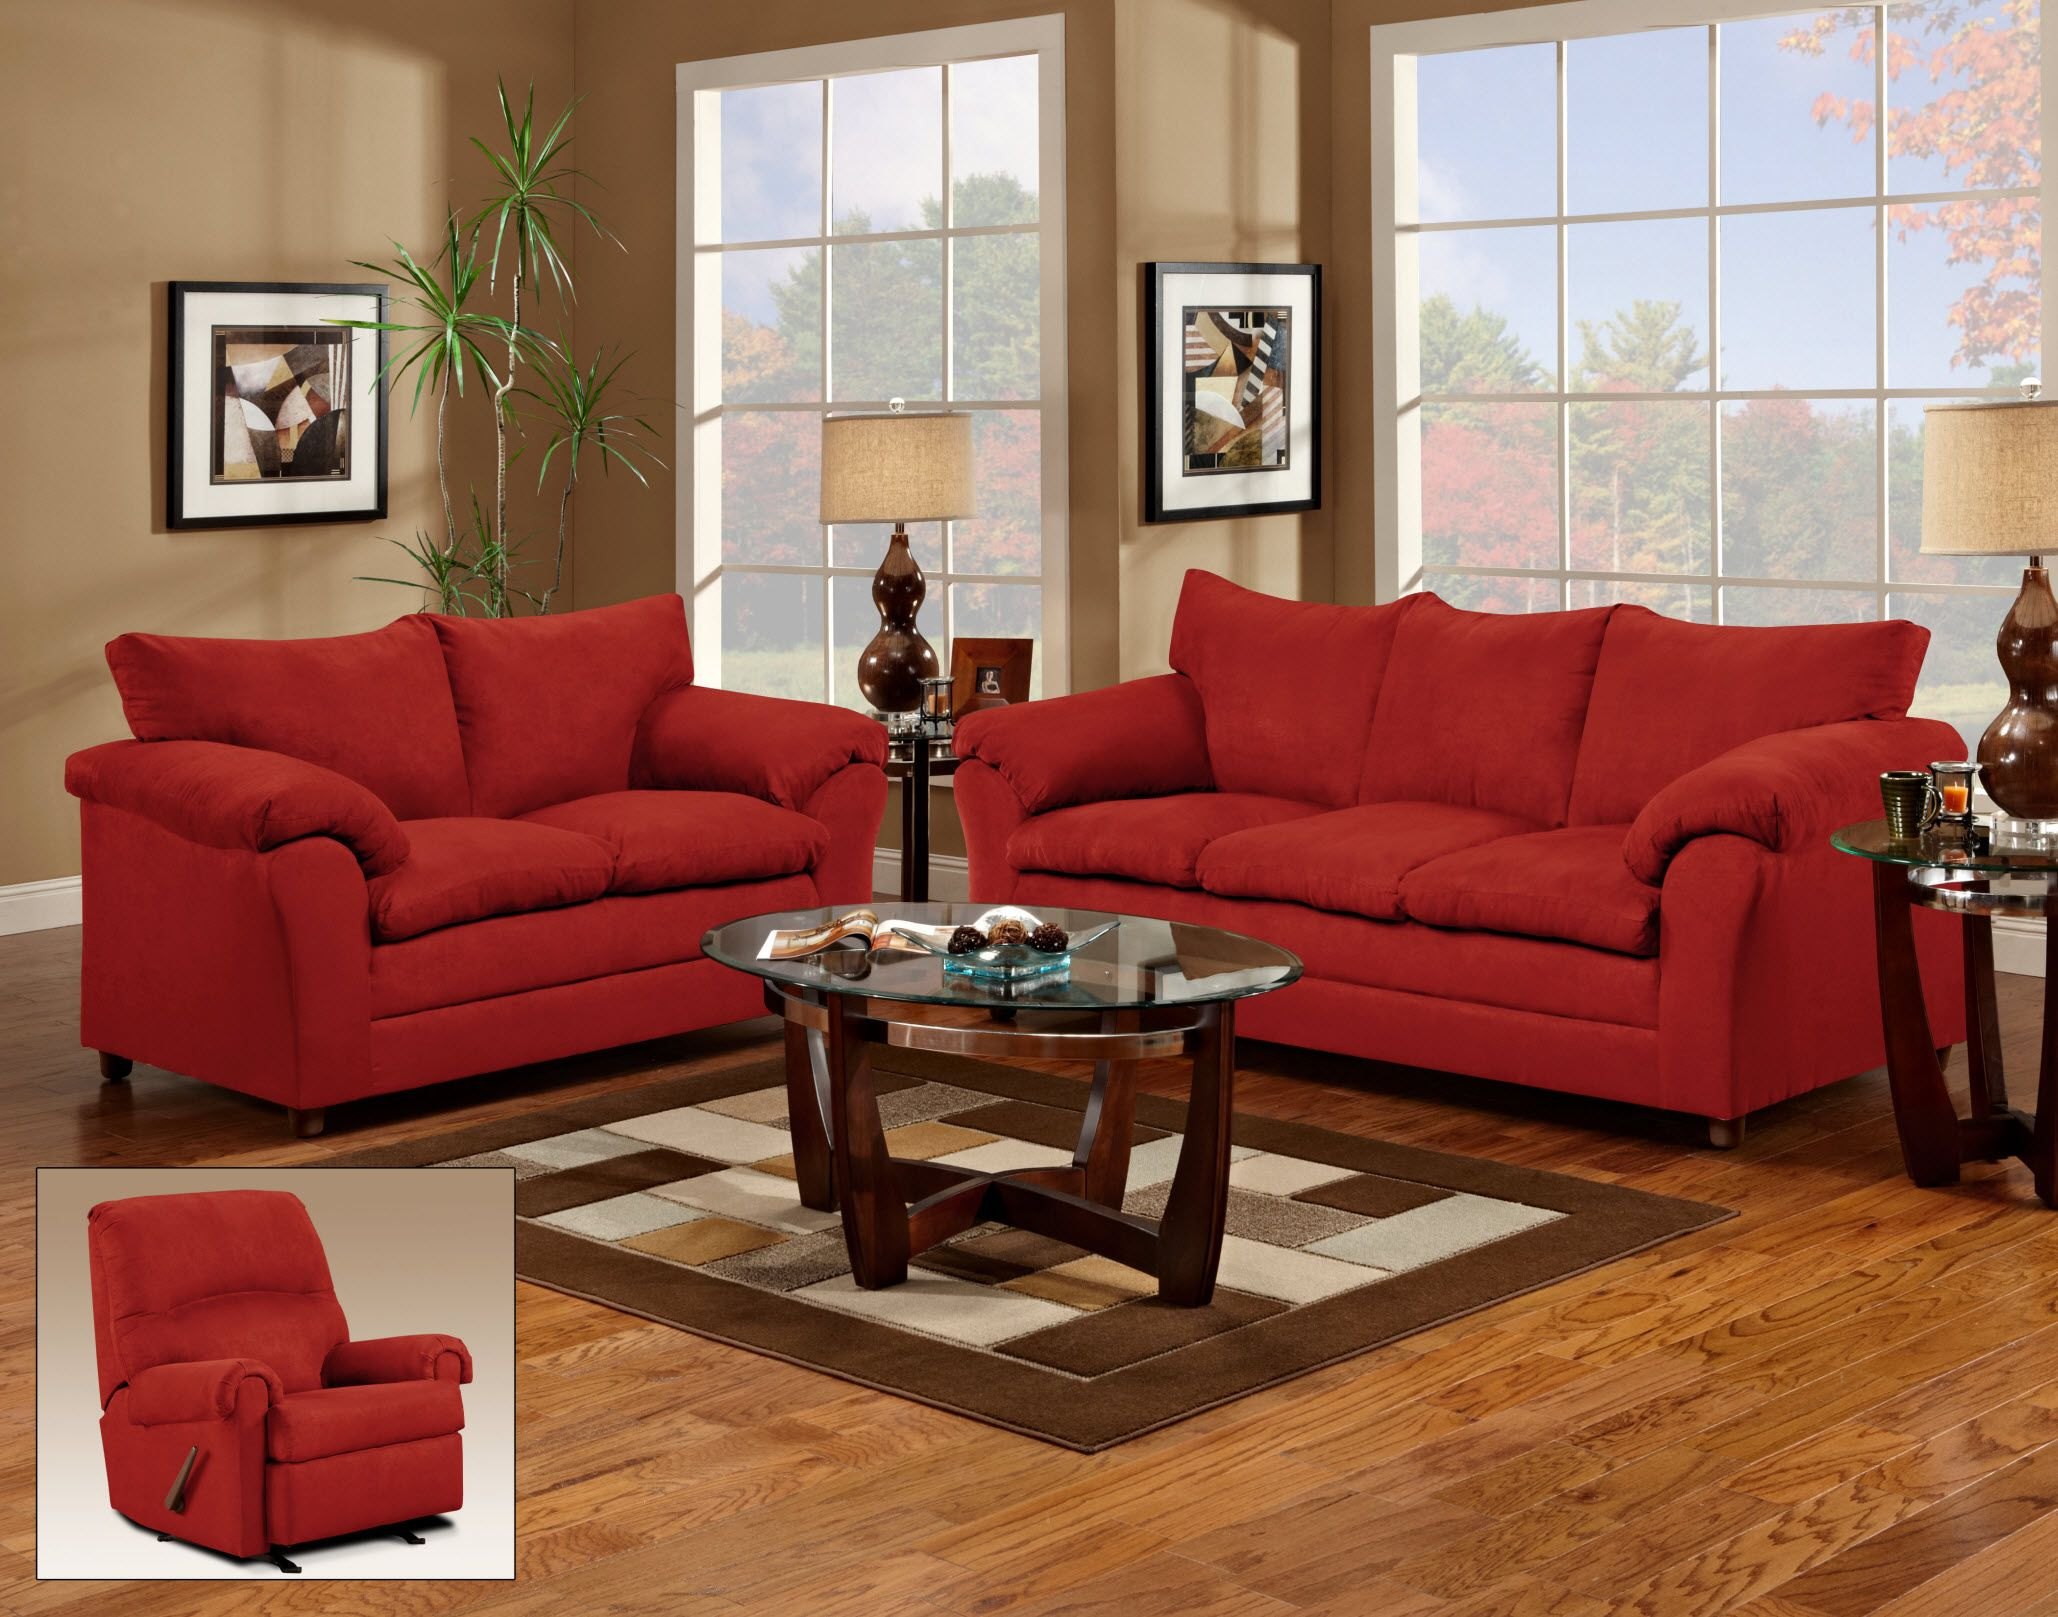 living room sofa photos luxury bedroom red couch and loveseat for the home